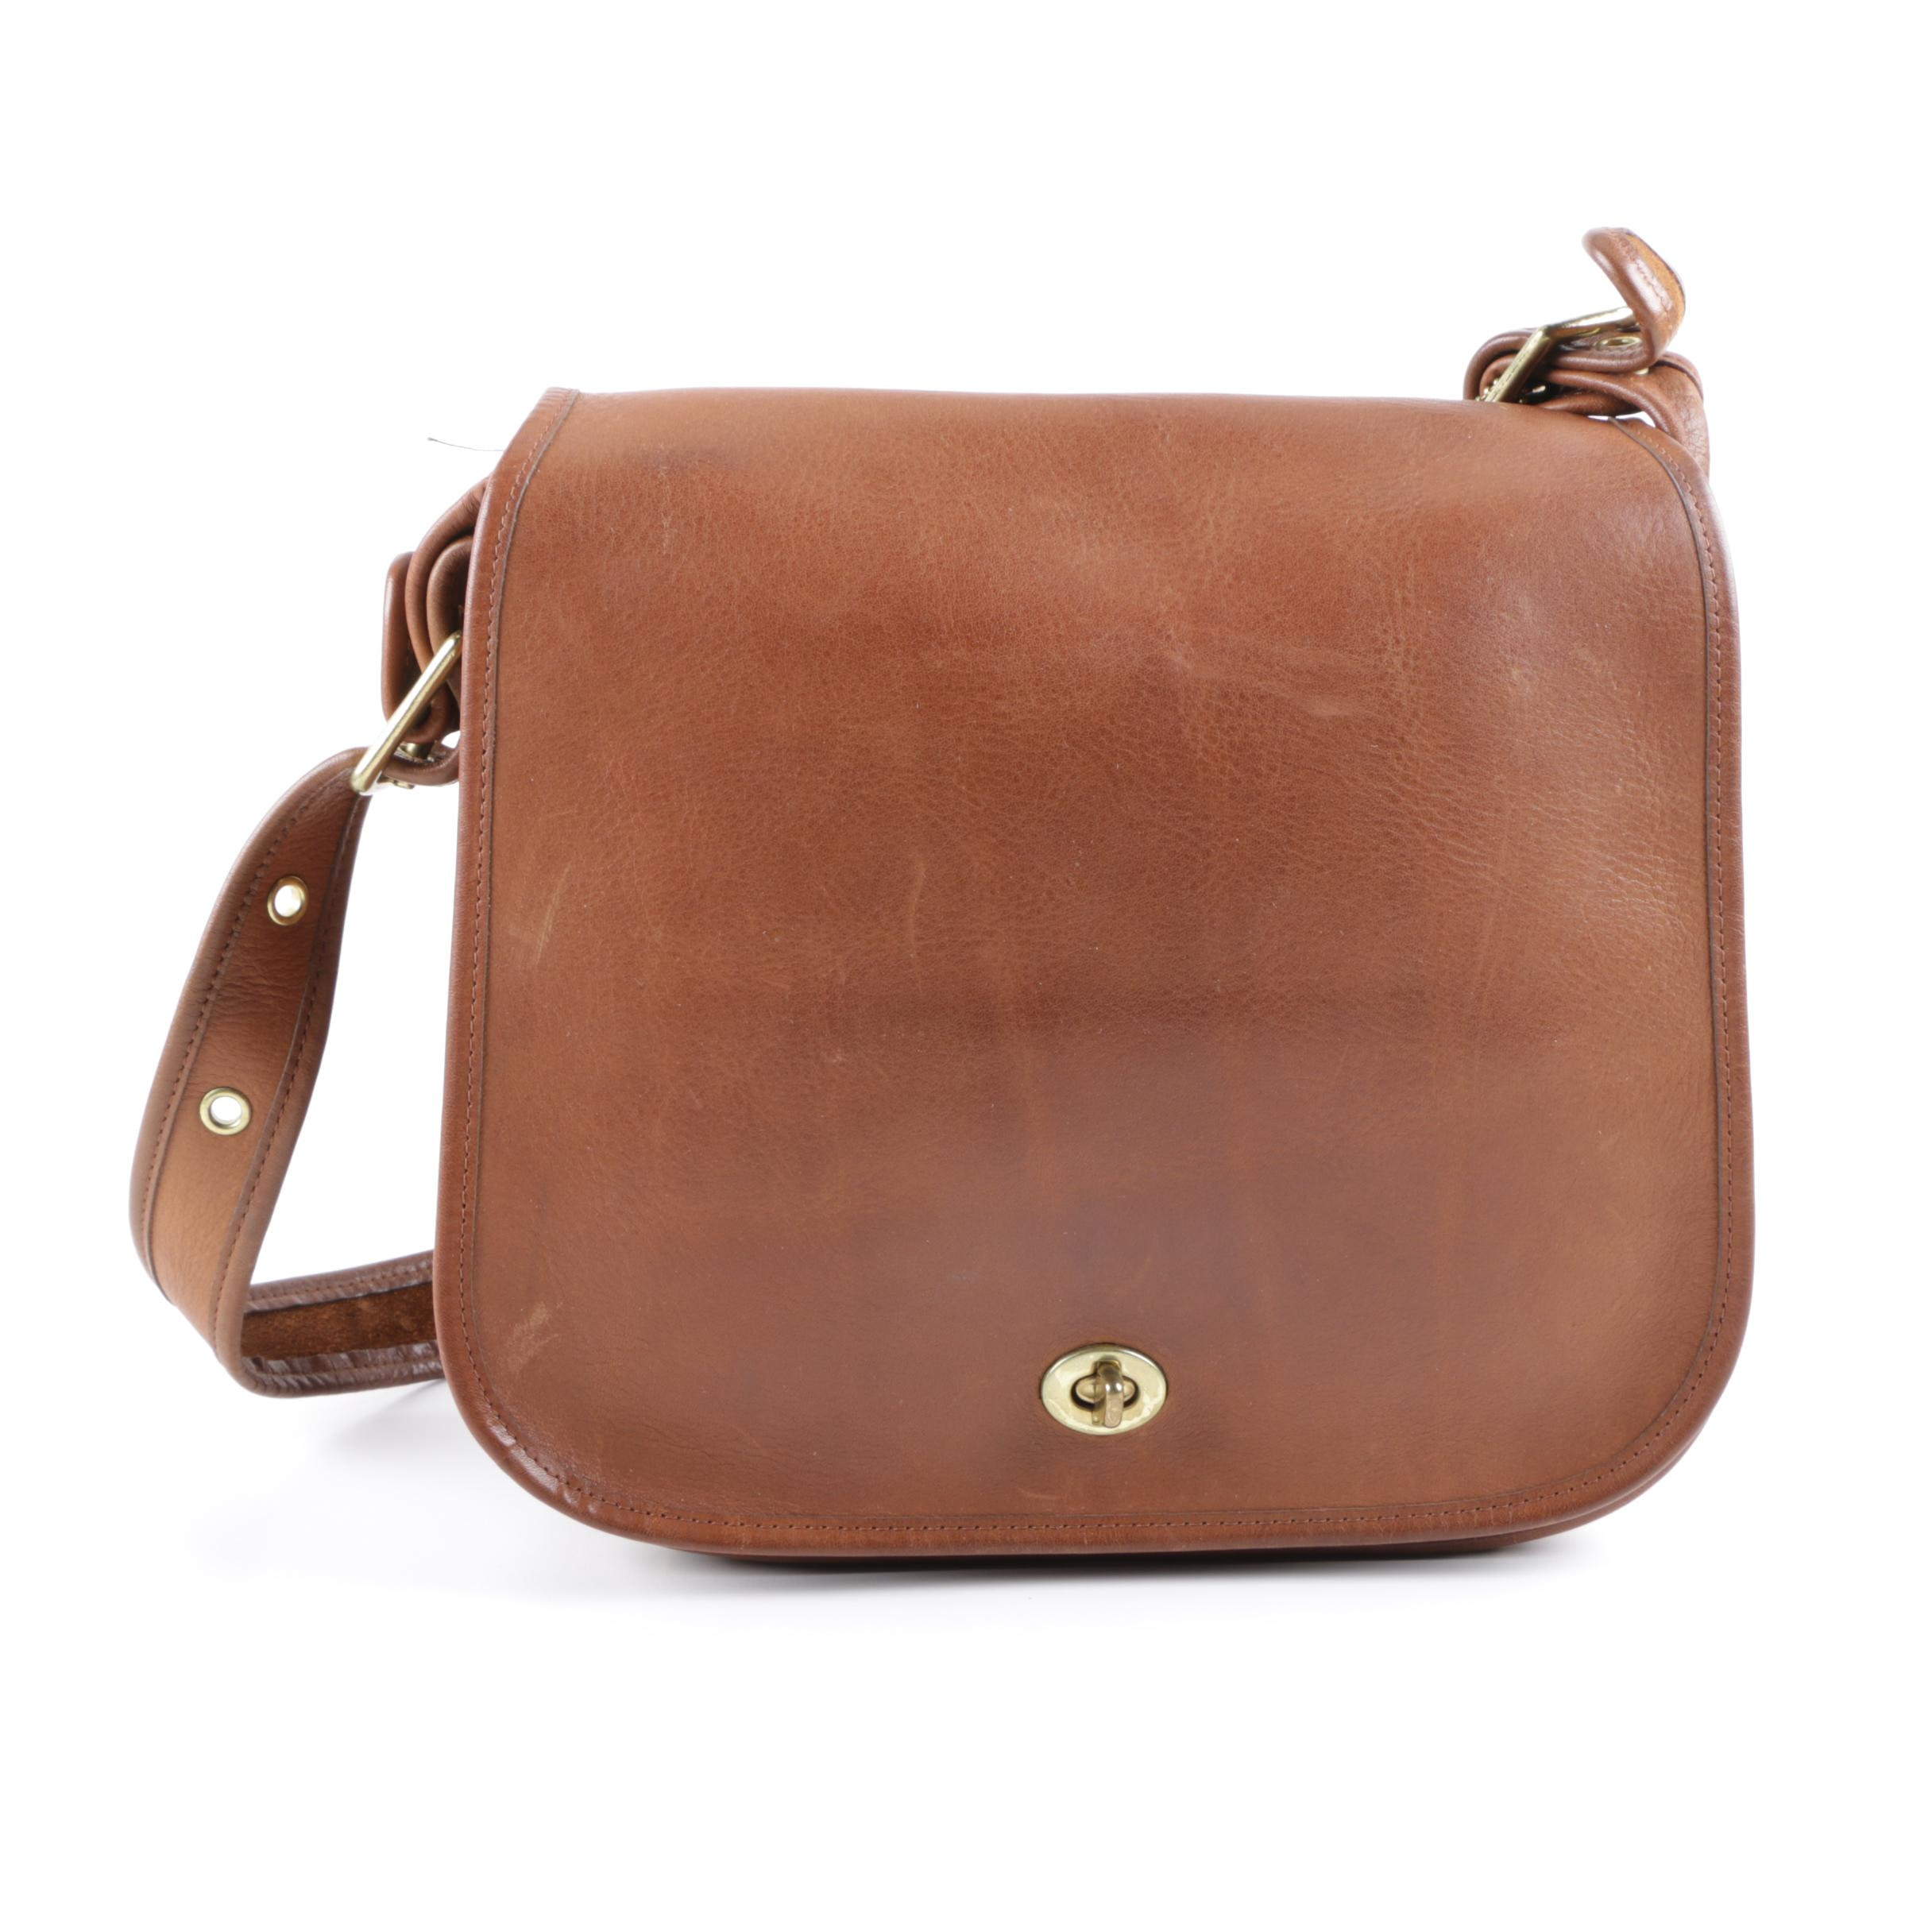 Vintage Coach New York City Stewardess Brown Leather Shoulder Bag